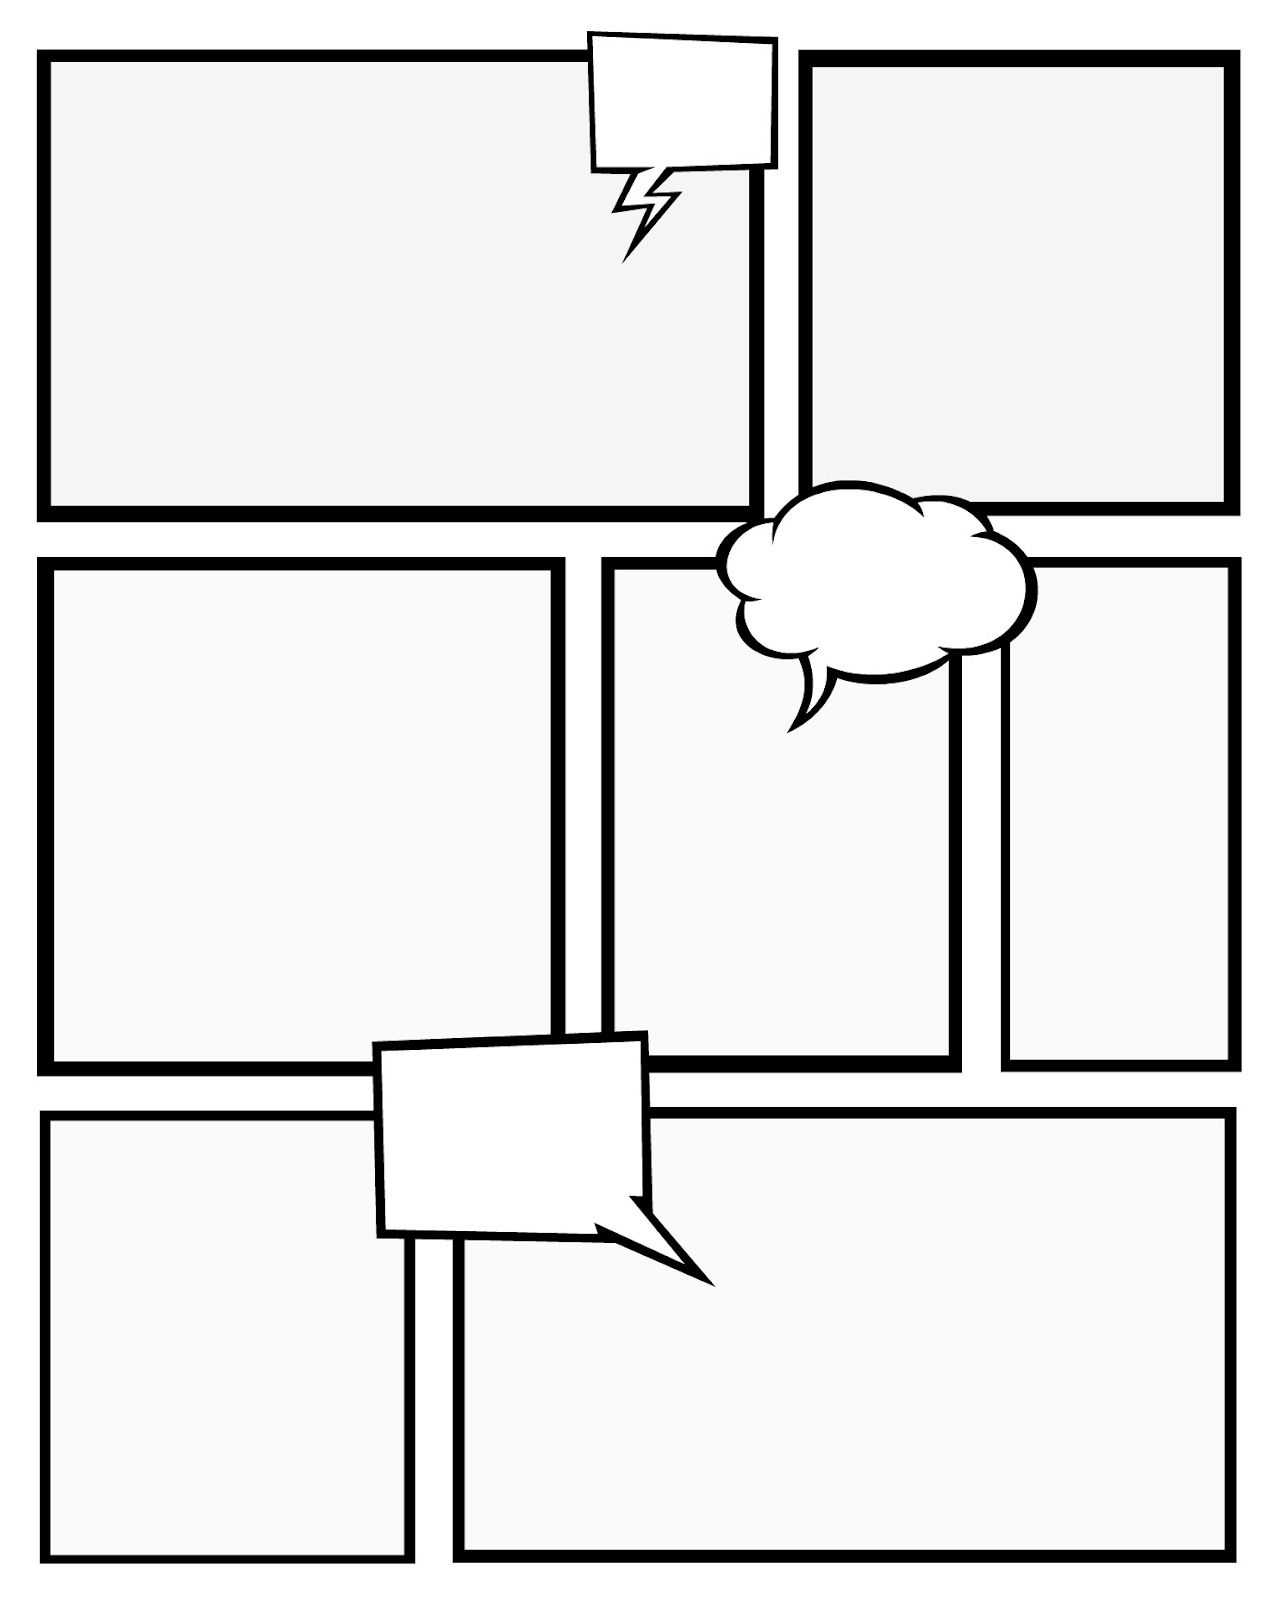 Free Printables Comic Strips To Use For Story Telling (3 With Regard To Printable Blank Comic Strip Template For Kids